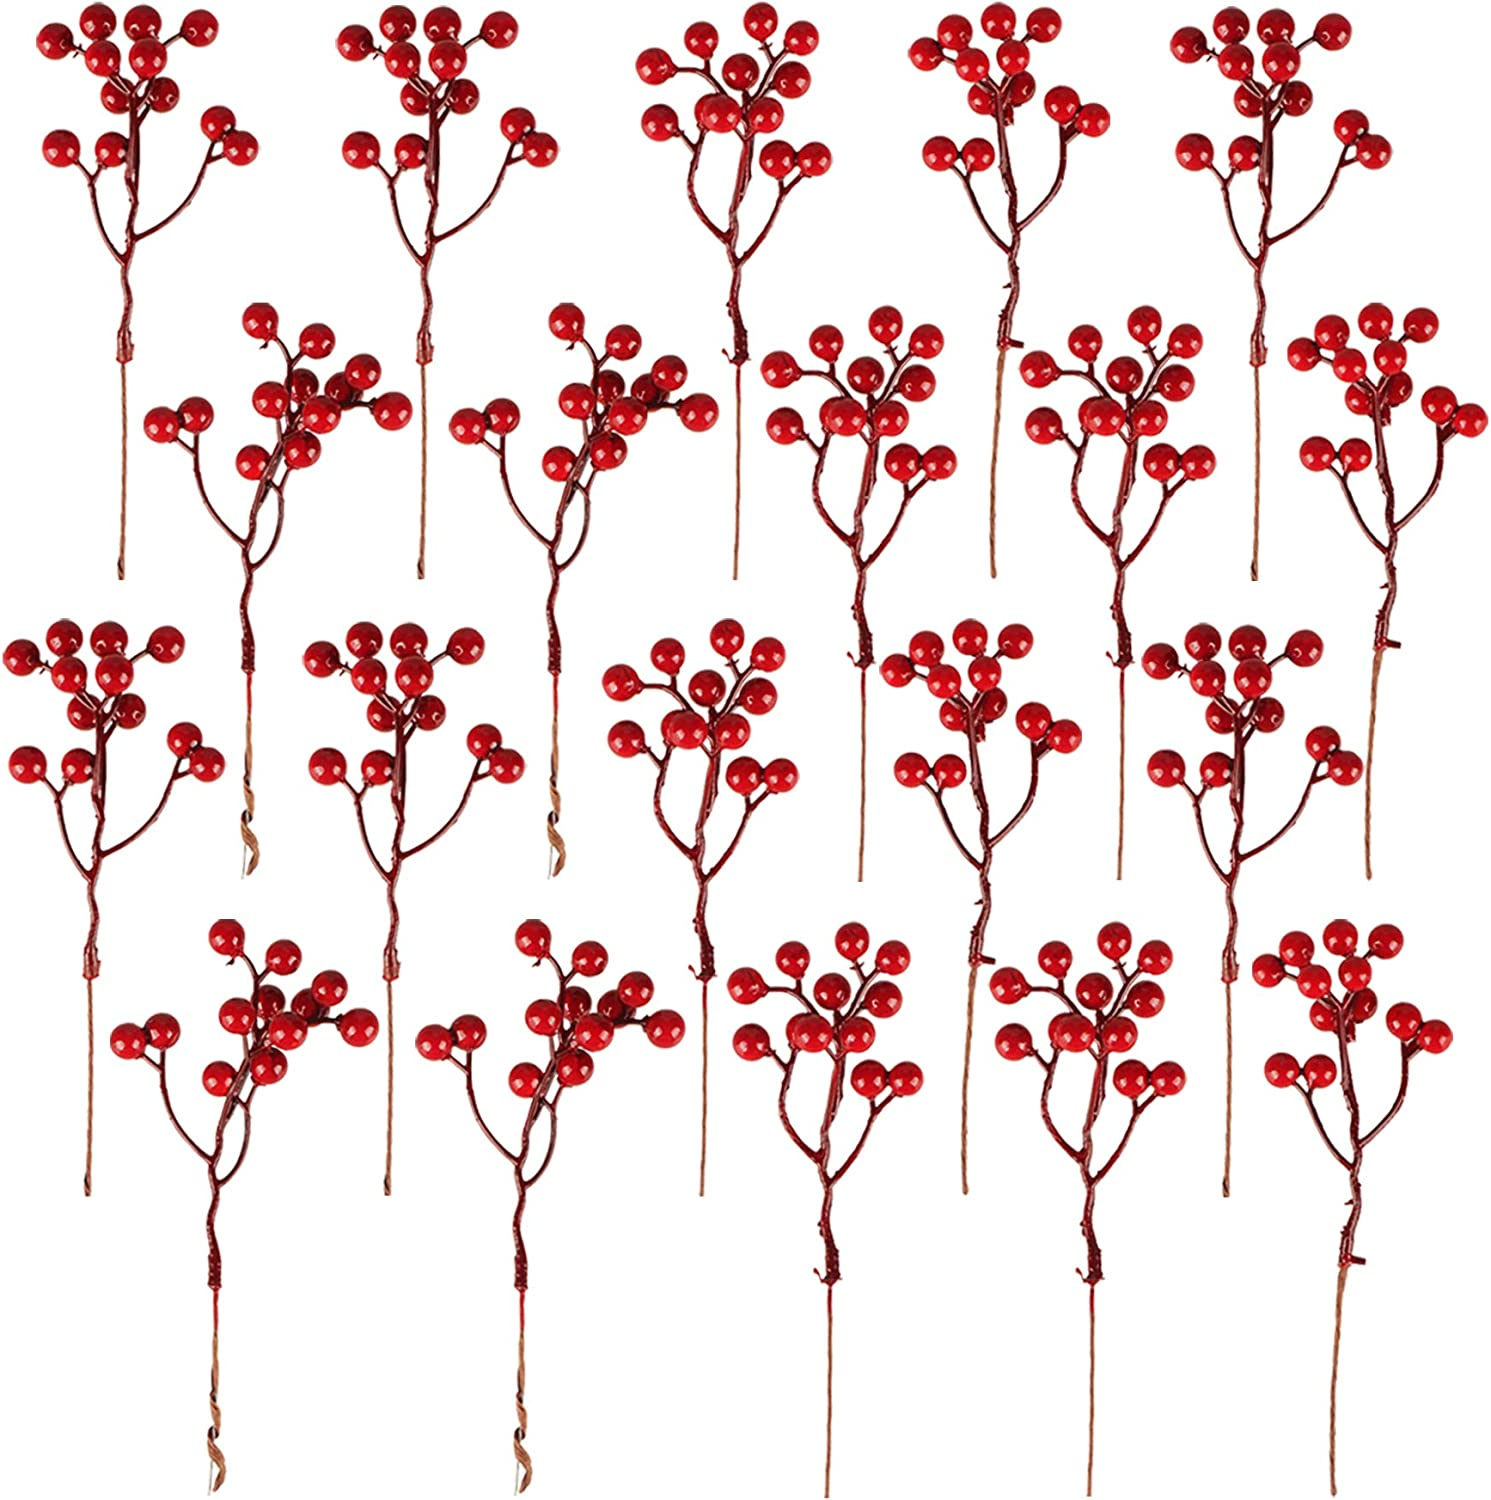 Fangoo 20 Pack Artificial Red Berry Stems, 7.1 Inch Burgundy Red Berry Picks Holly Berries Branches for Christmas Tree Decorations Crafts Wedding Holiday Season Winter Décor Home Decor